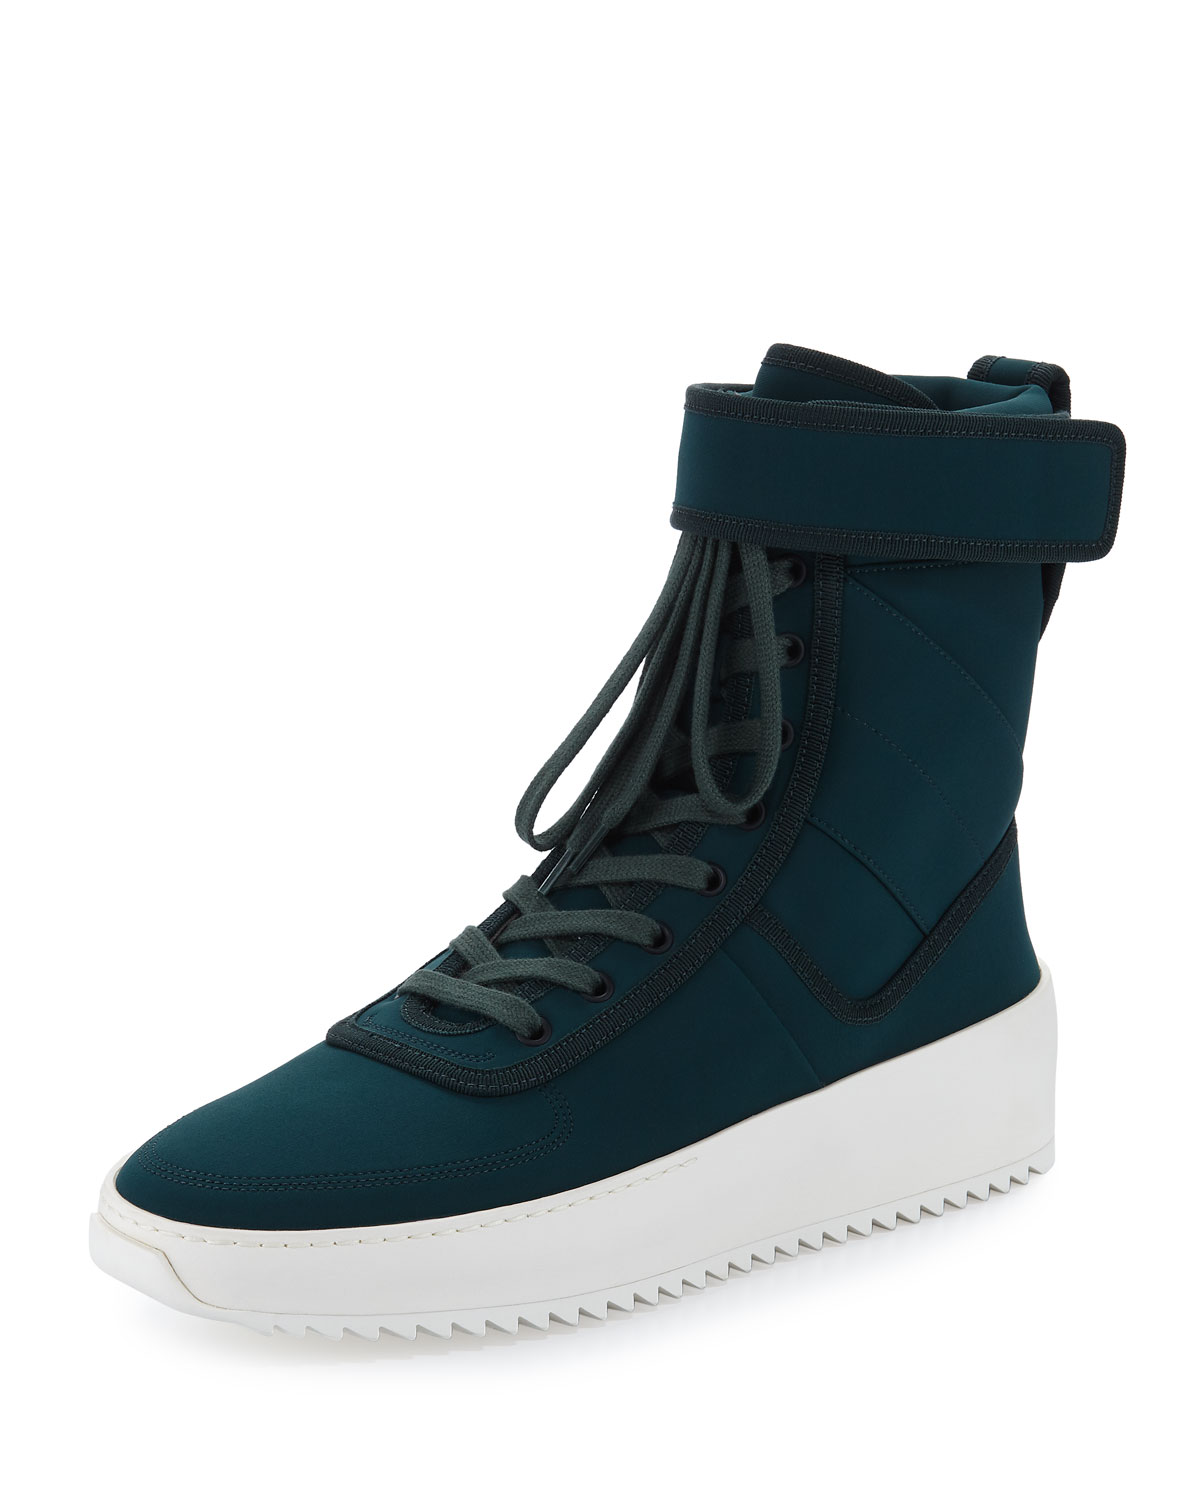 b17723647147 Fear of God Men s Leather High-Top Military Sneakers